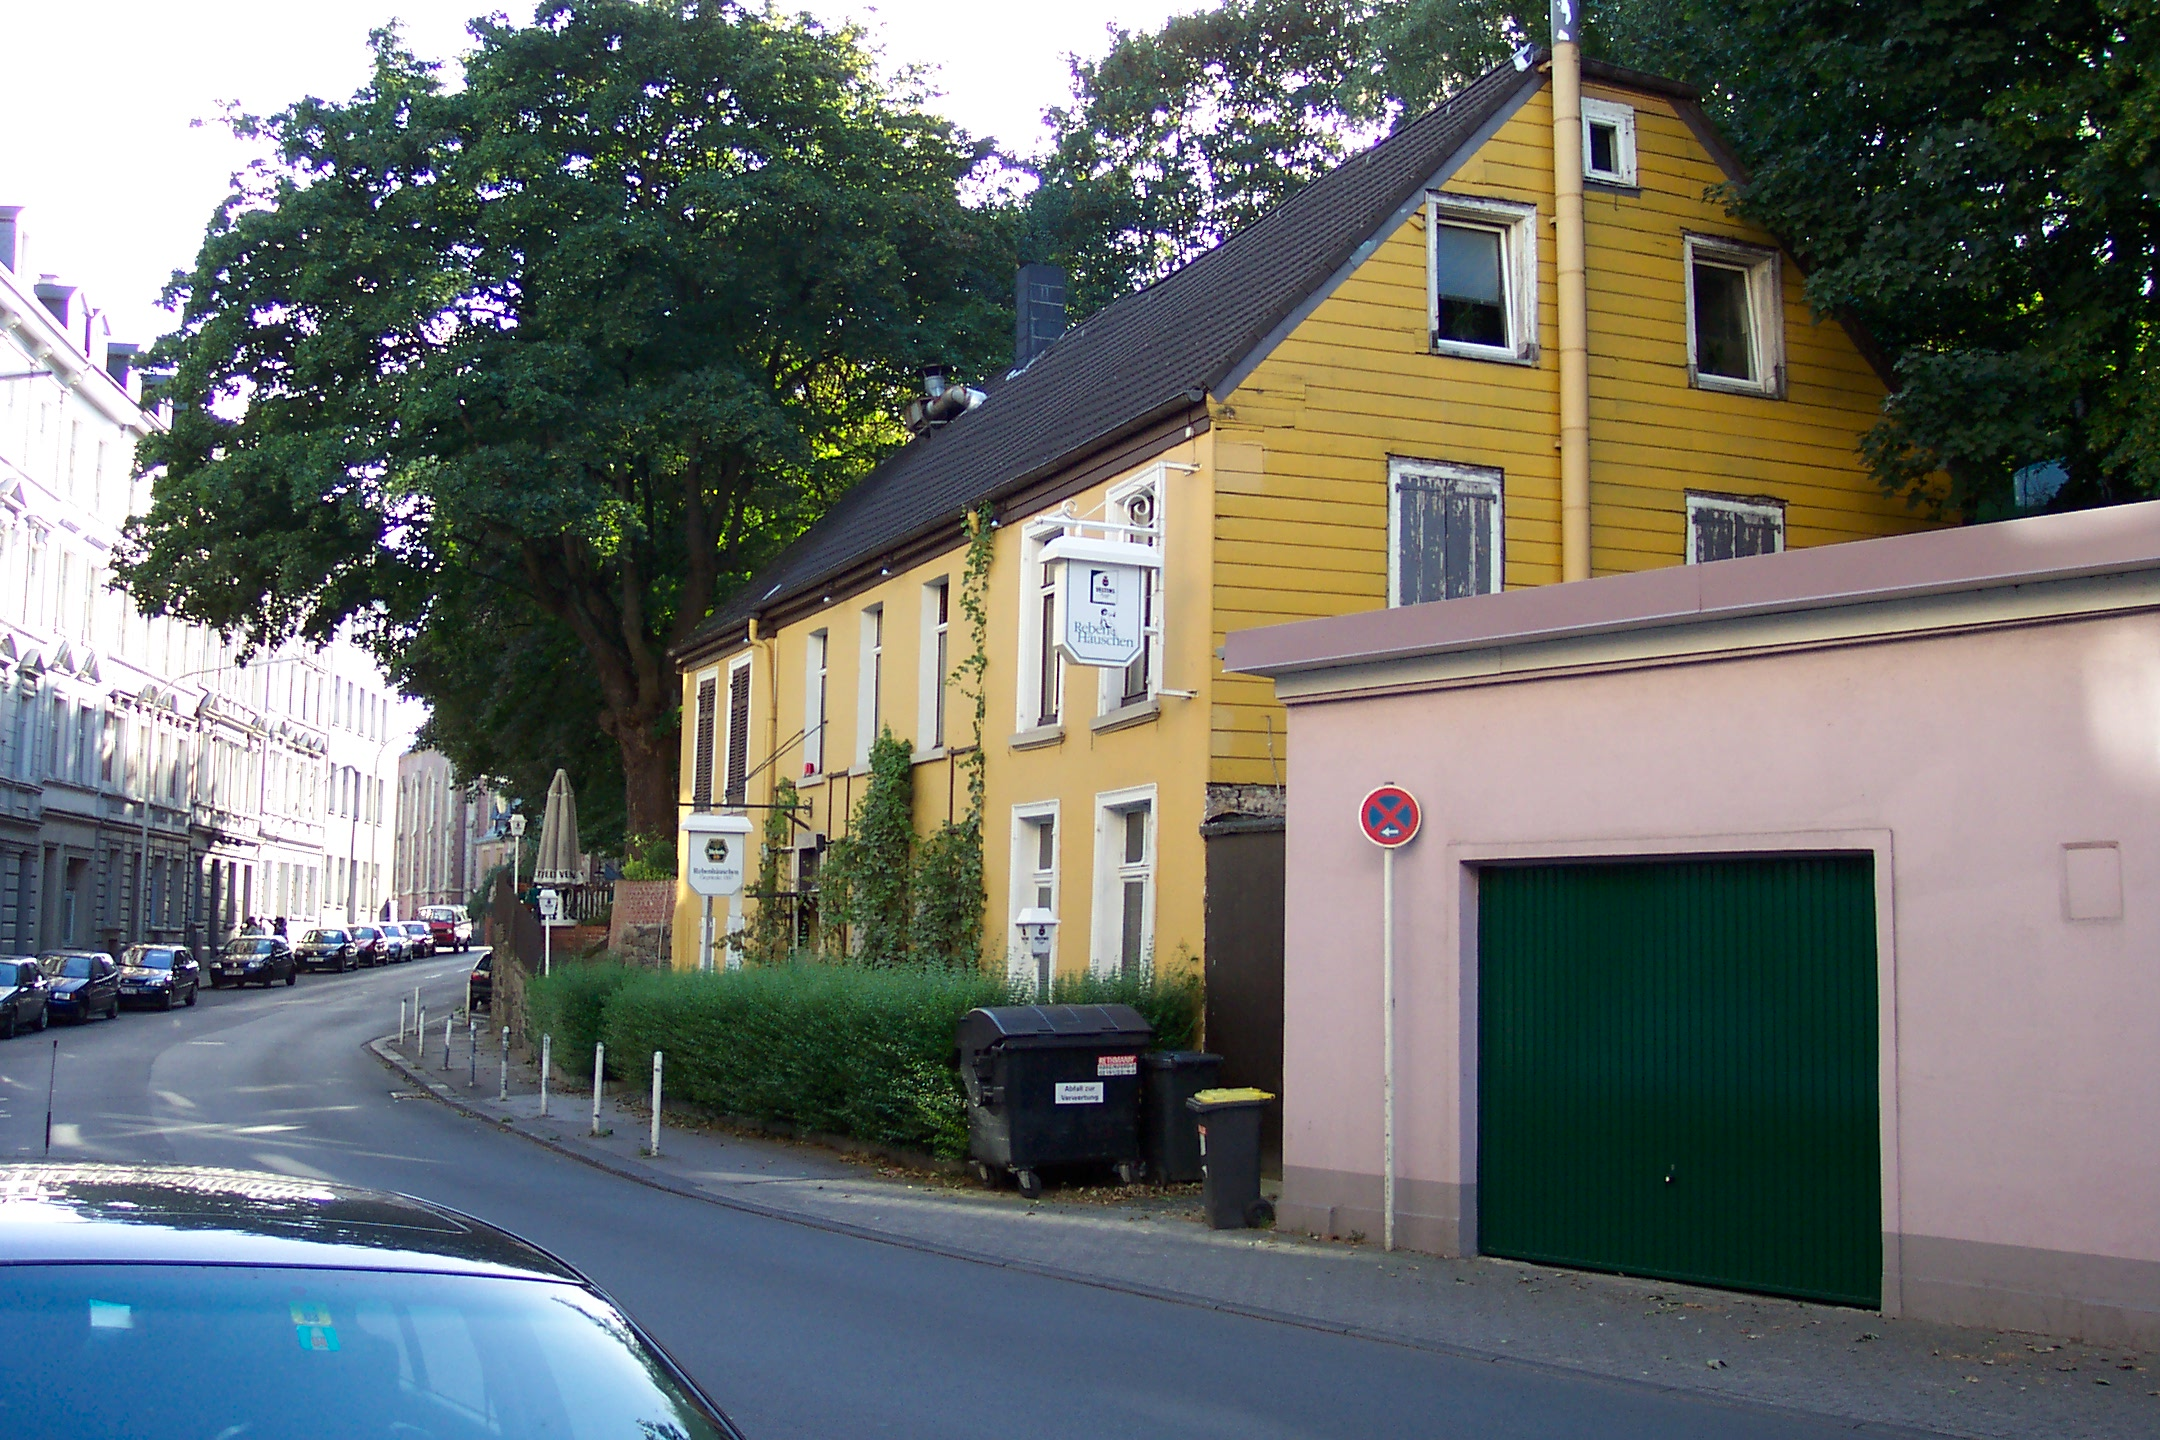 DateiWuppertal Nützenberger Str 0067jpg – Wikipedia